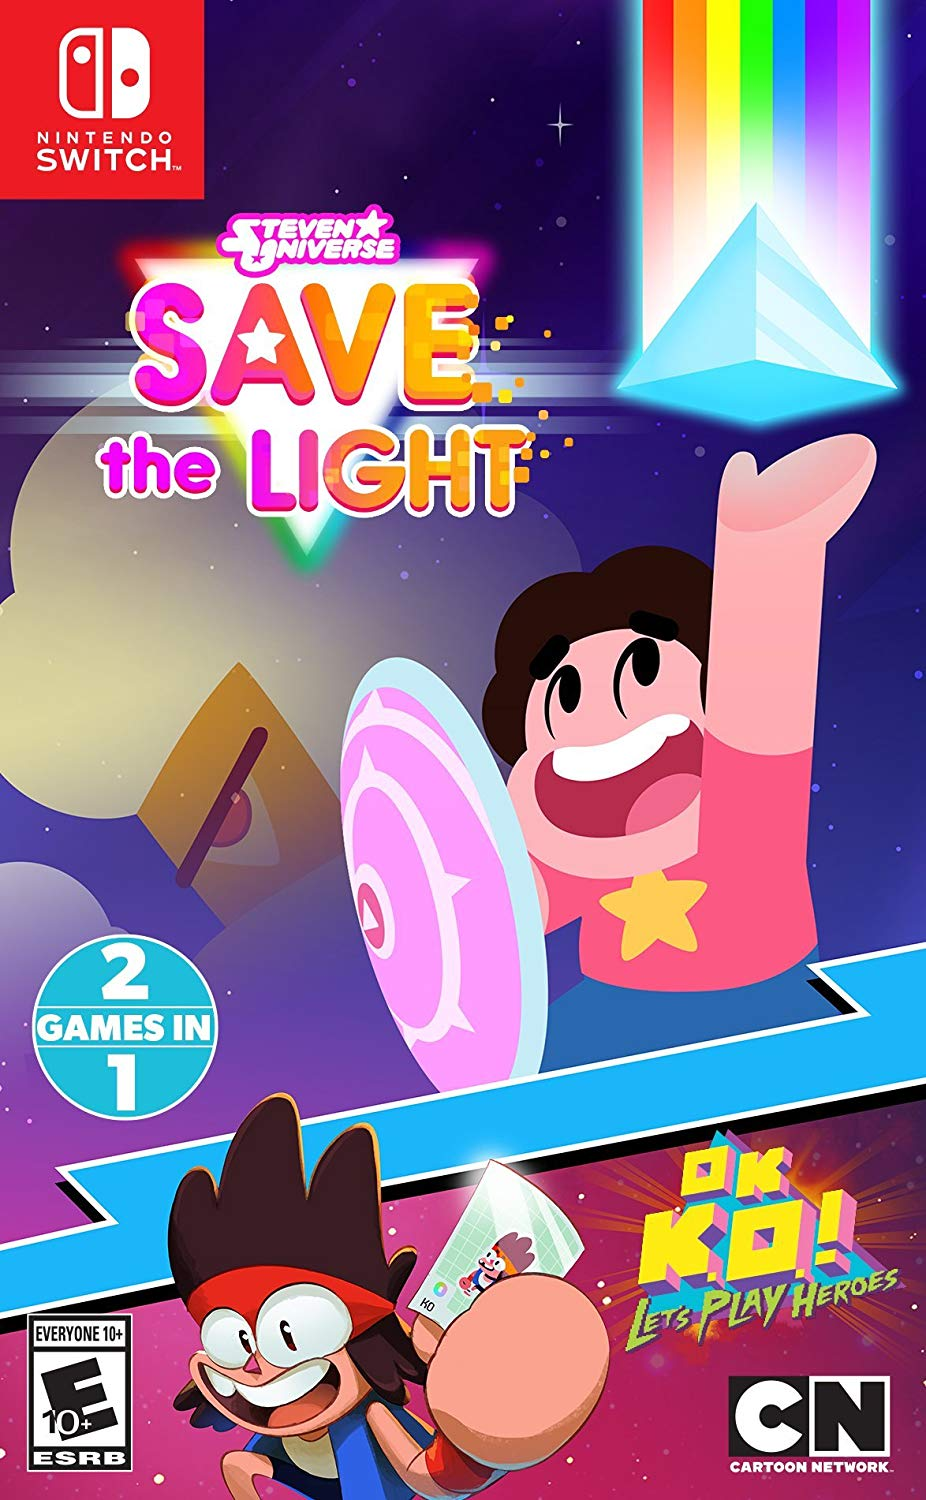 steven universe save the light and ok k o let s play heroes